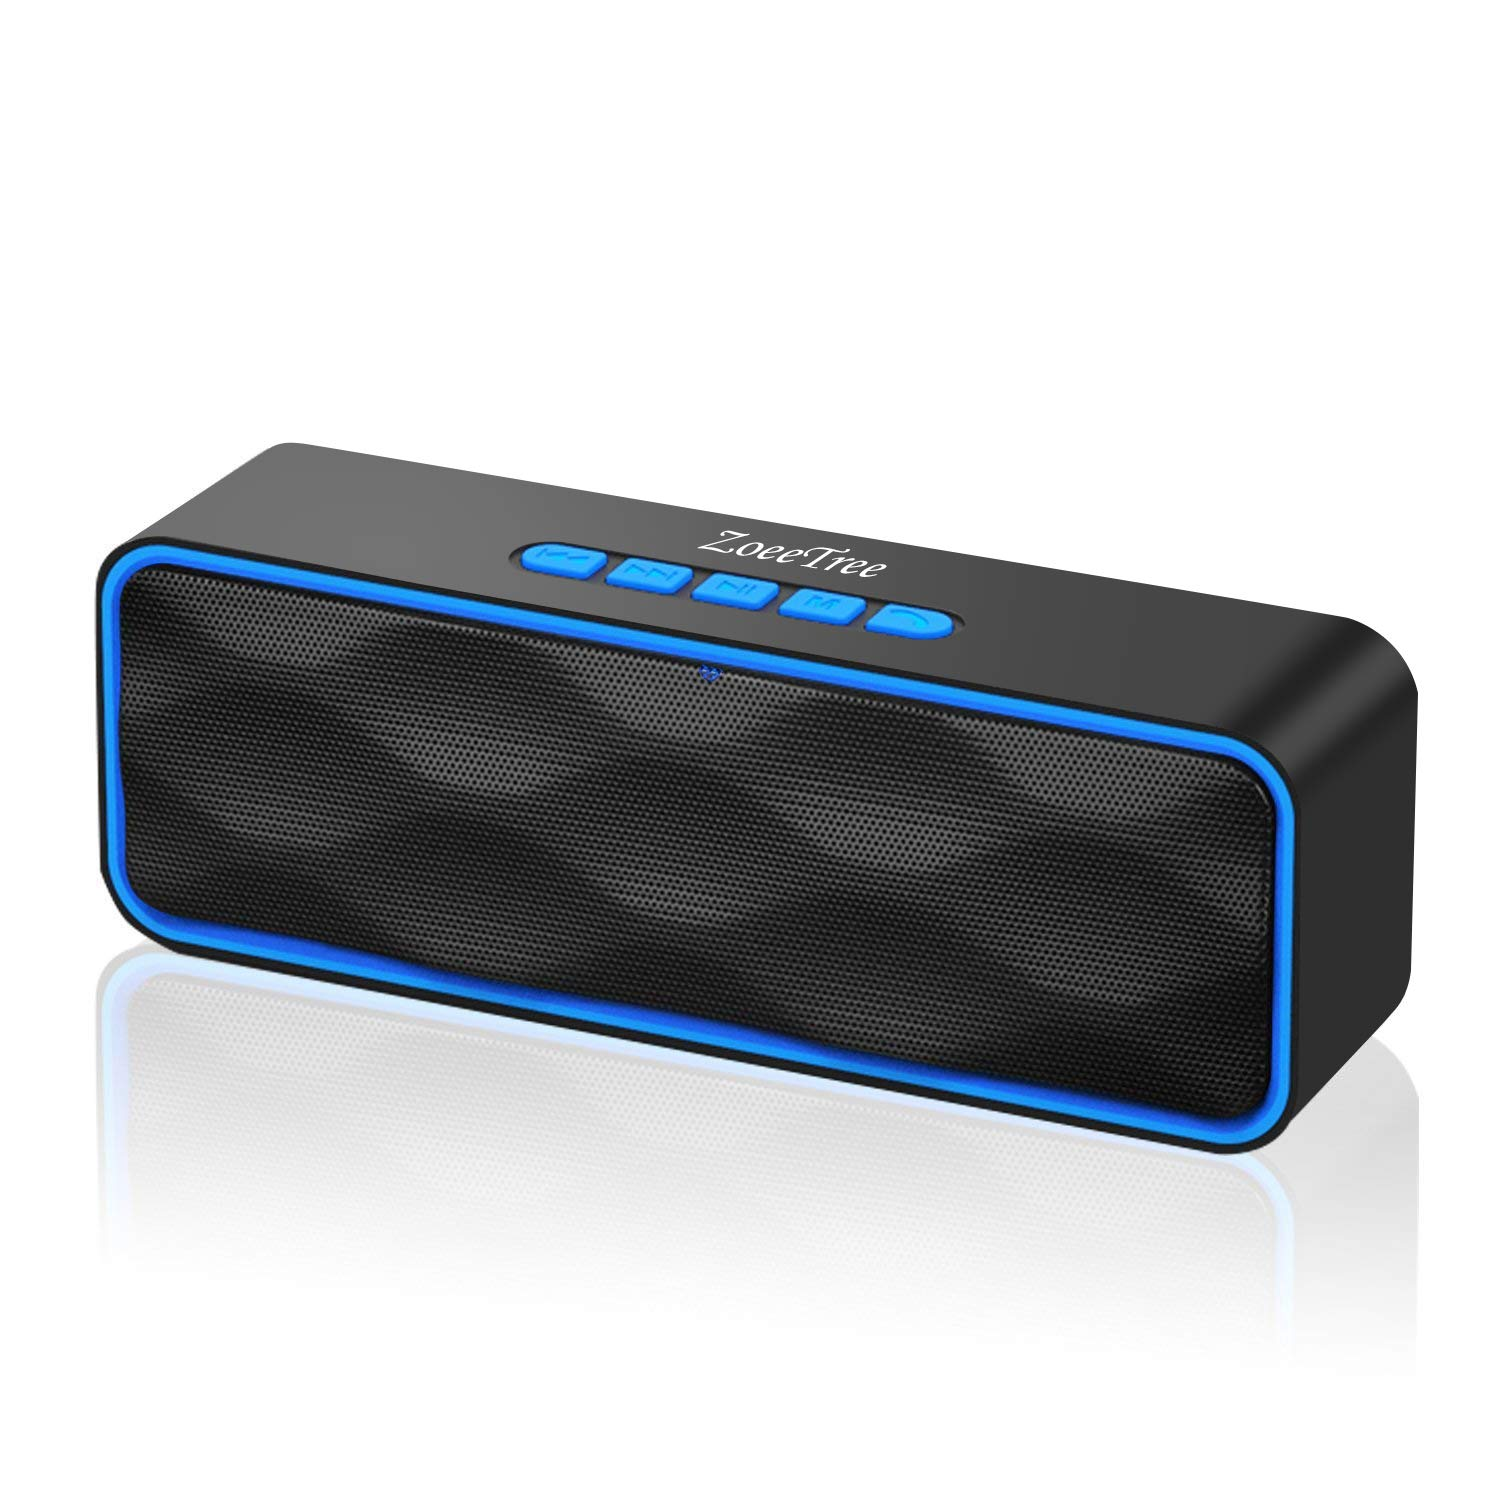 ZoeeTree S1 Wireless Bluetooth Speaker, Portable V4.2+EDR Stereo Speakers with Loud HD Audio and Bass, Built-In Mic, FM Radio, 12H Playtime by ZoeeTree